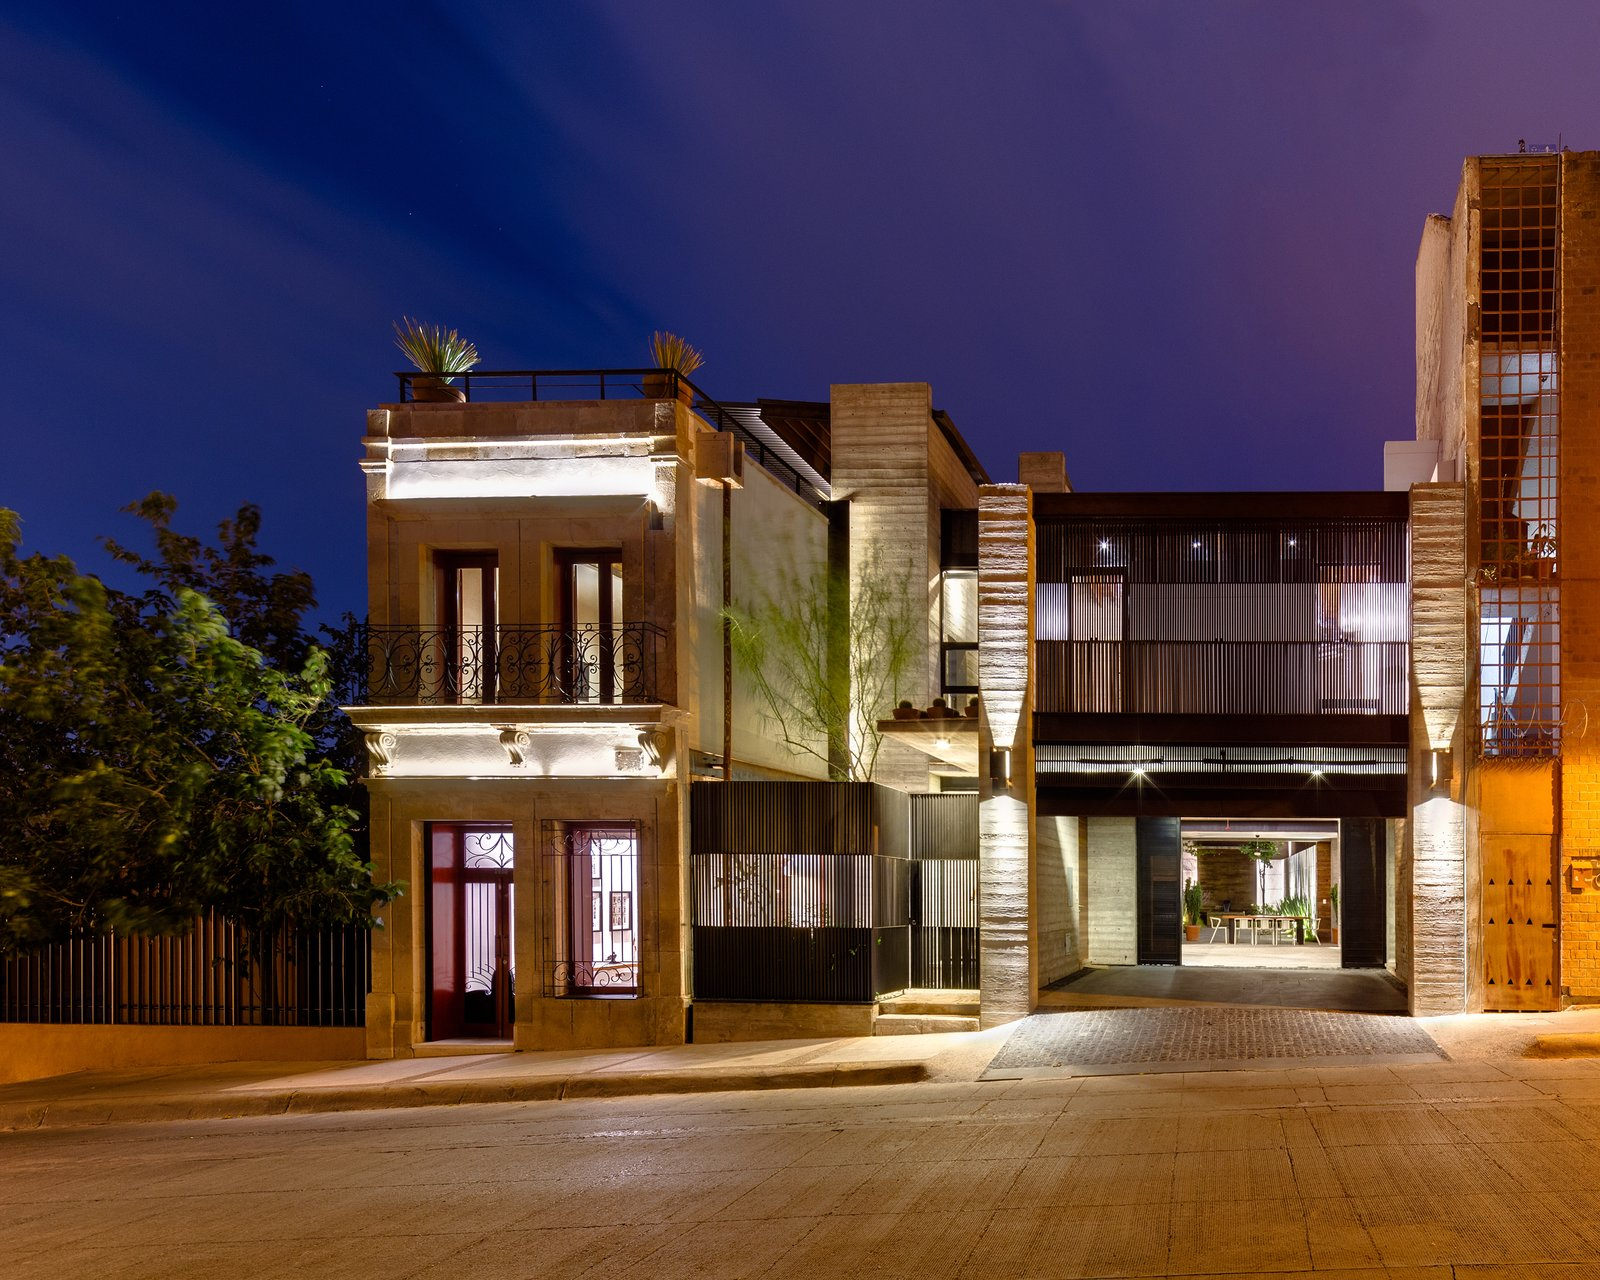 The front elevation is seen at night. The old structure fits on a compact 130-square-foot lot, while the new building adds an extra 1,000 square feet. Adobe walls, wood beams, limestone facade, and earthen roof all make up the tactful blend of old and new.  Hybrid Home by Sarah Akkoush